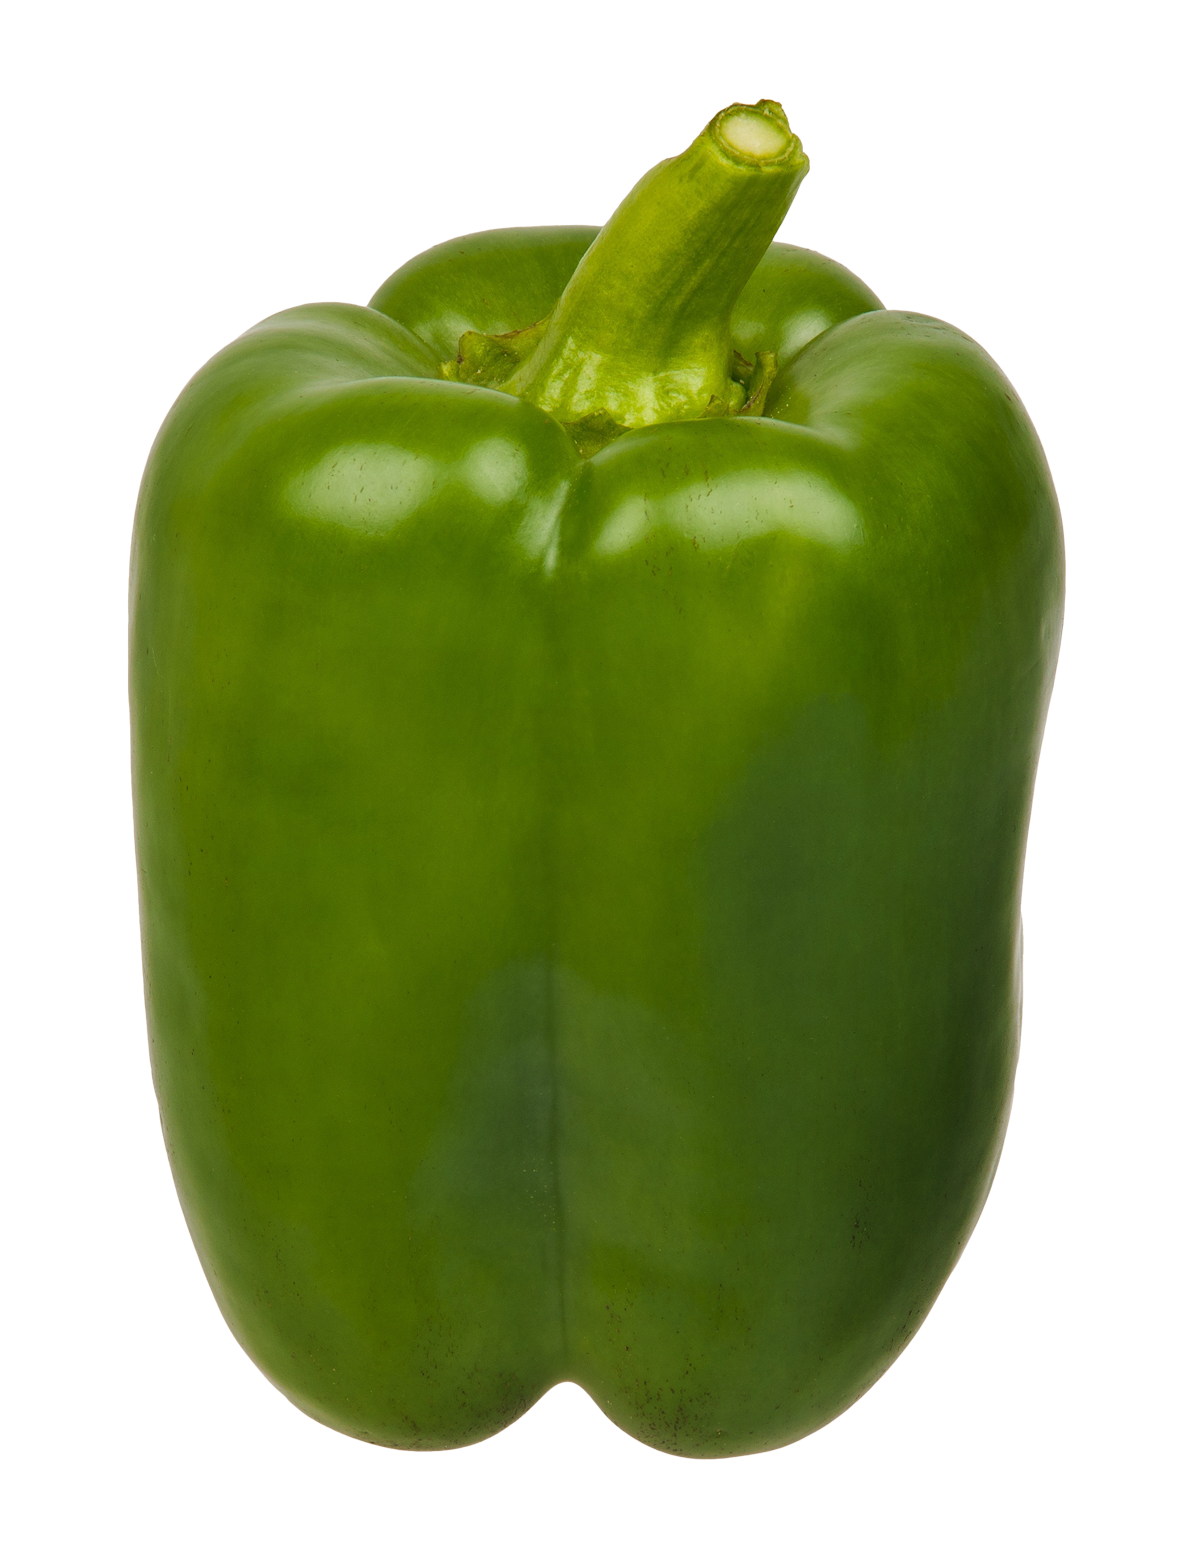 Pepper transparent sweet. Green bell png image